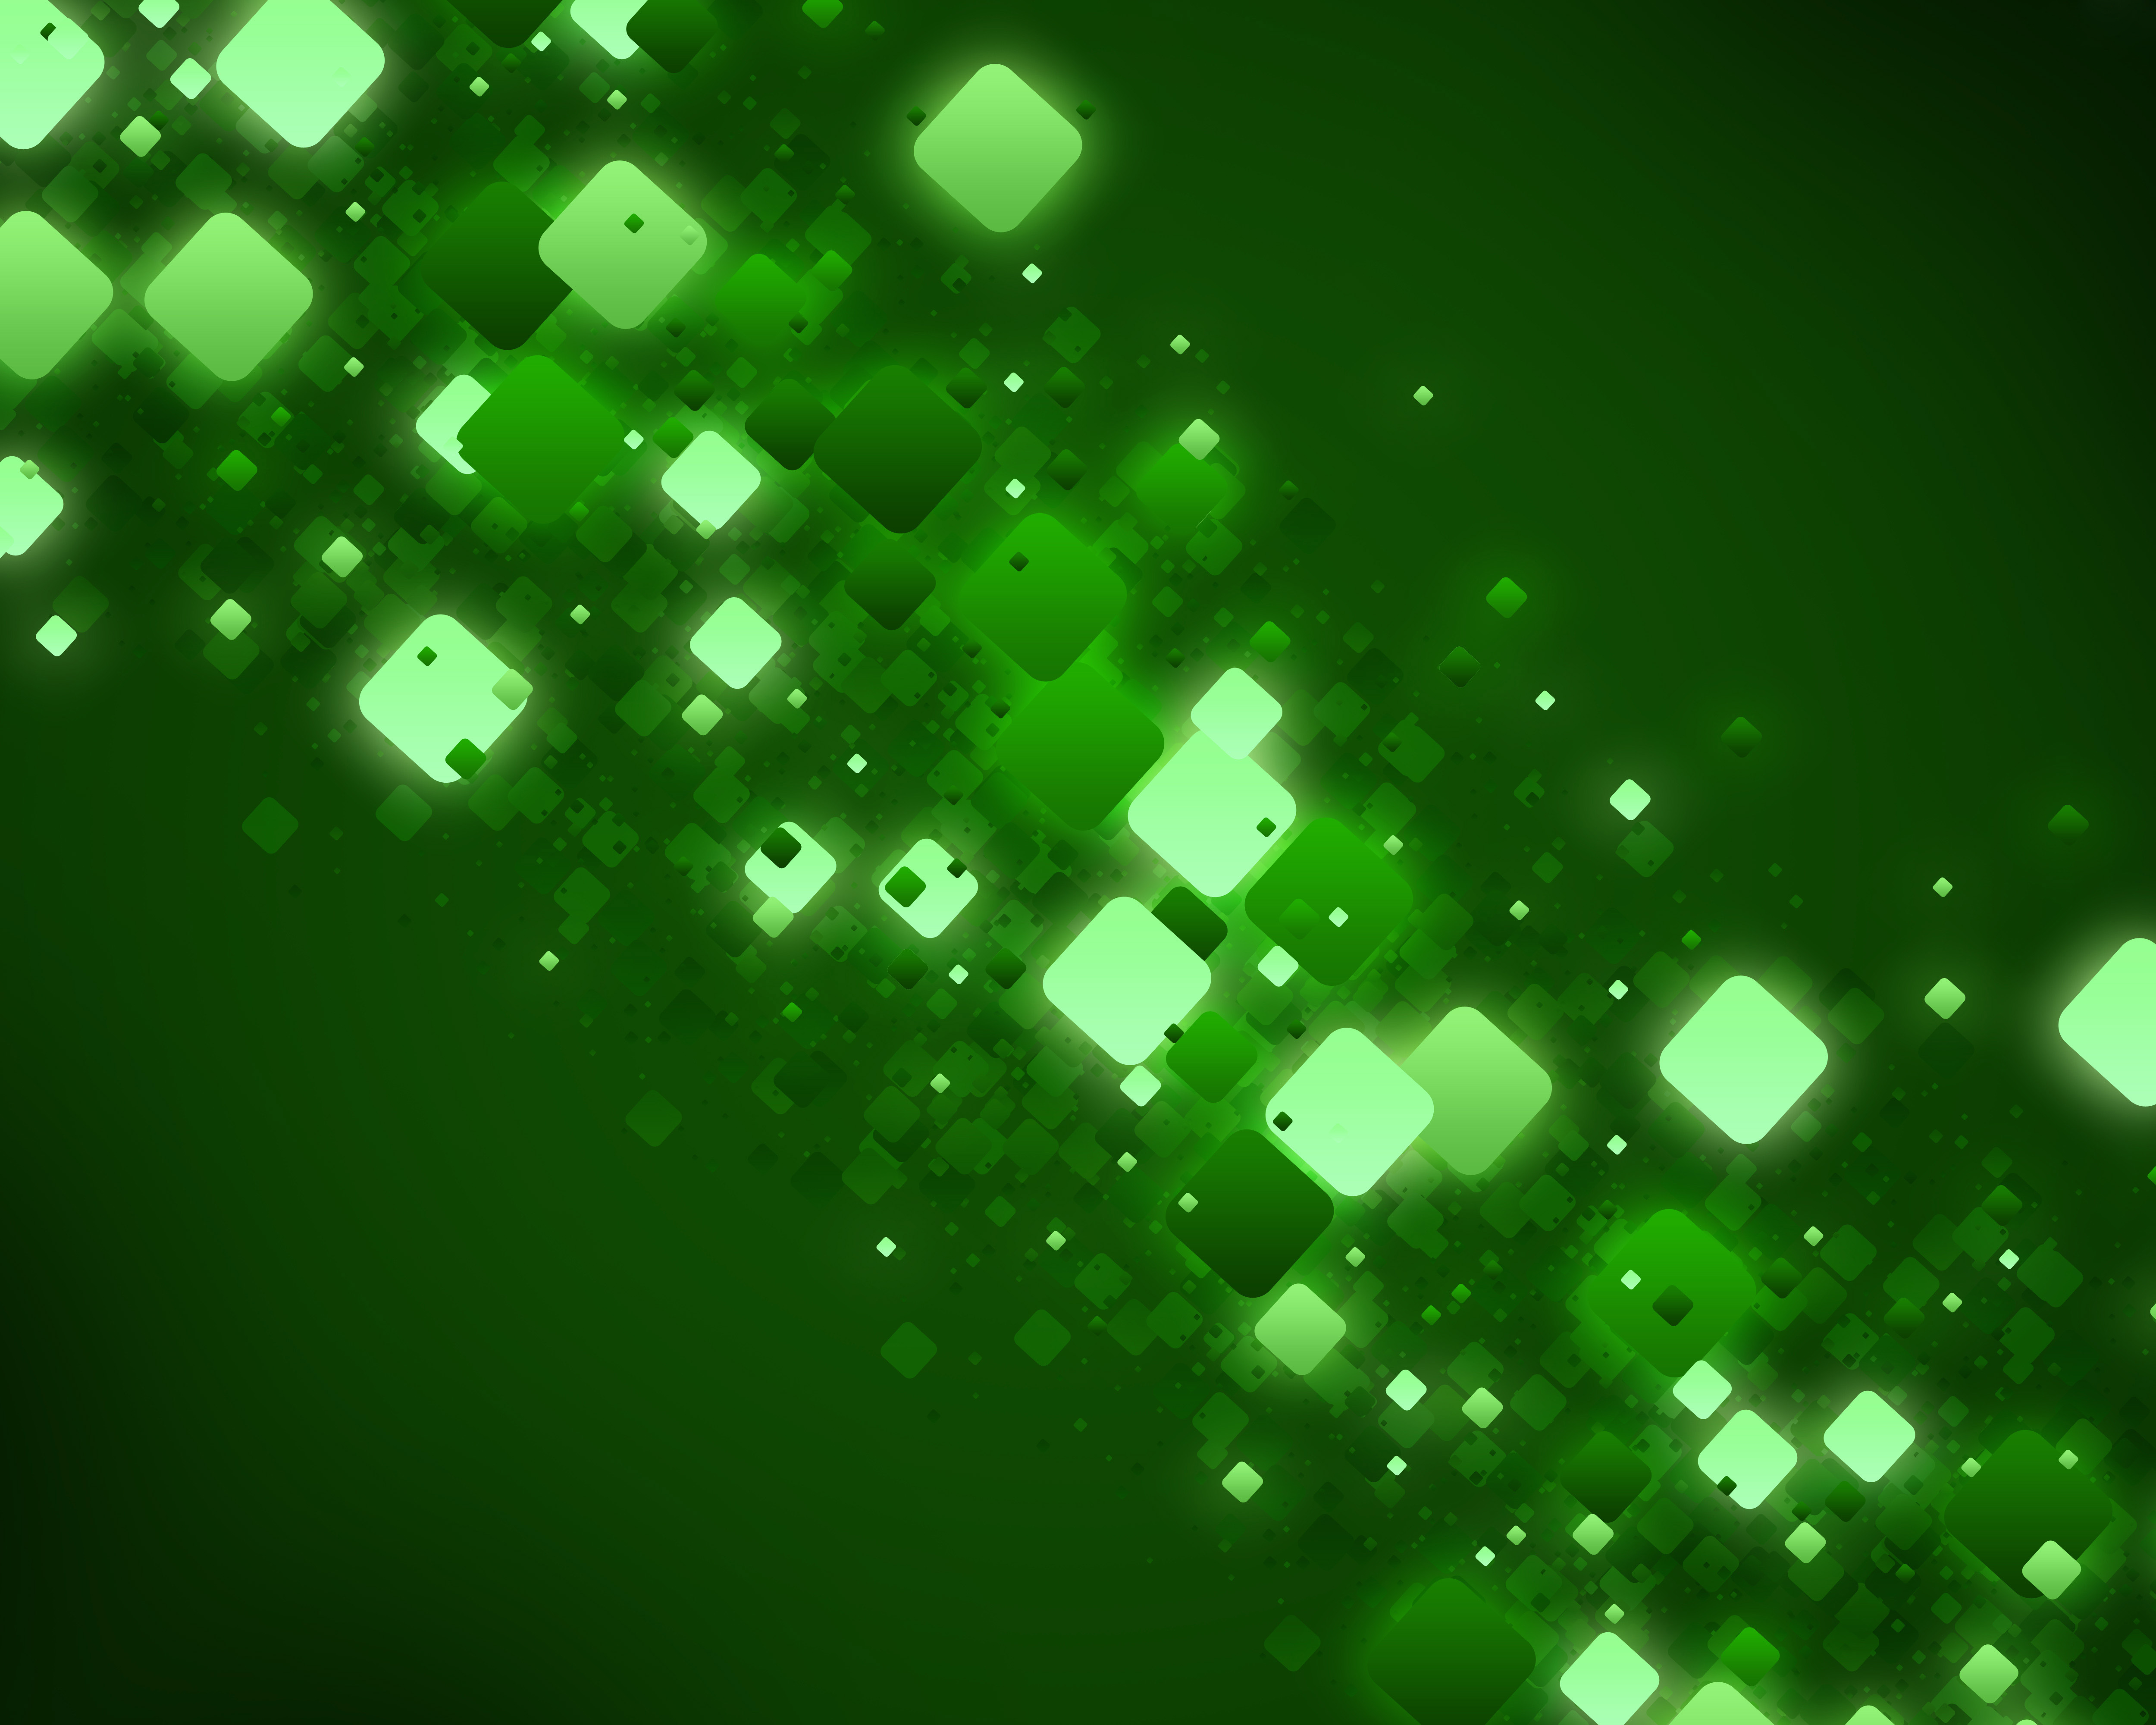 texture, squares light, green download photo